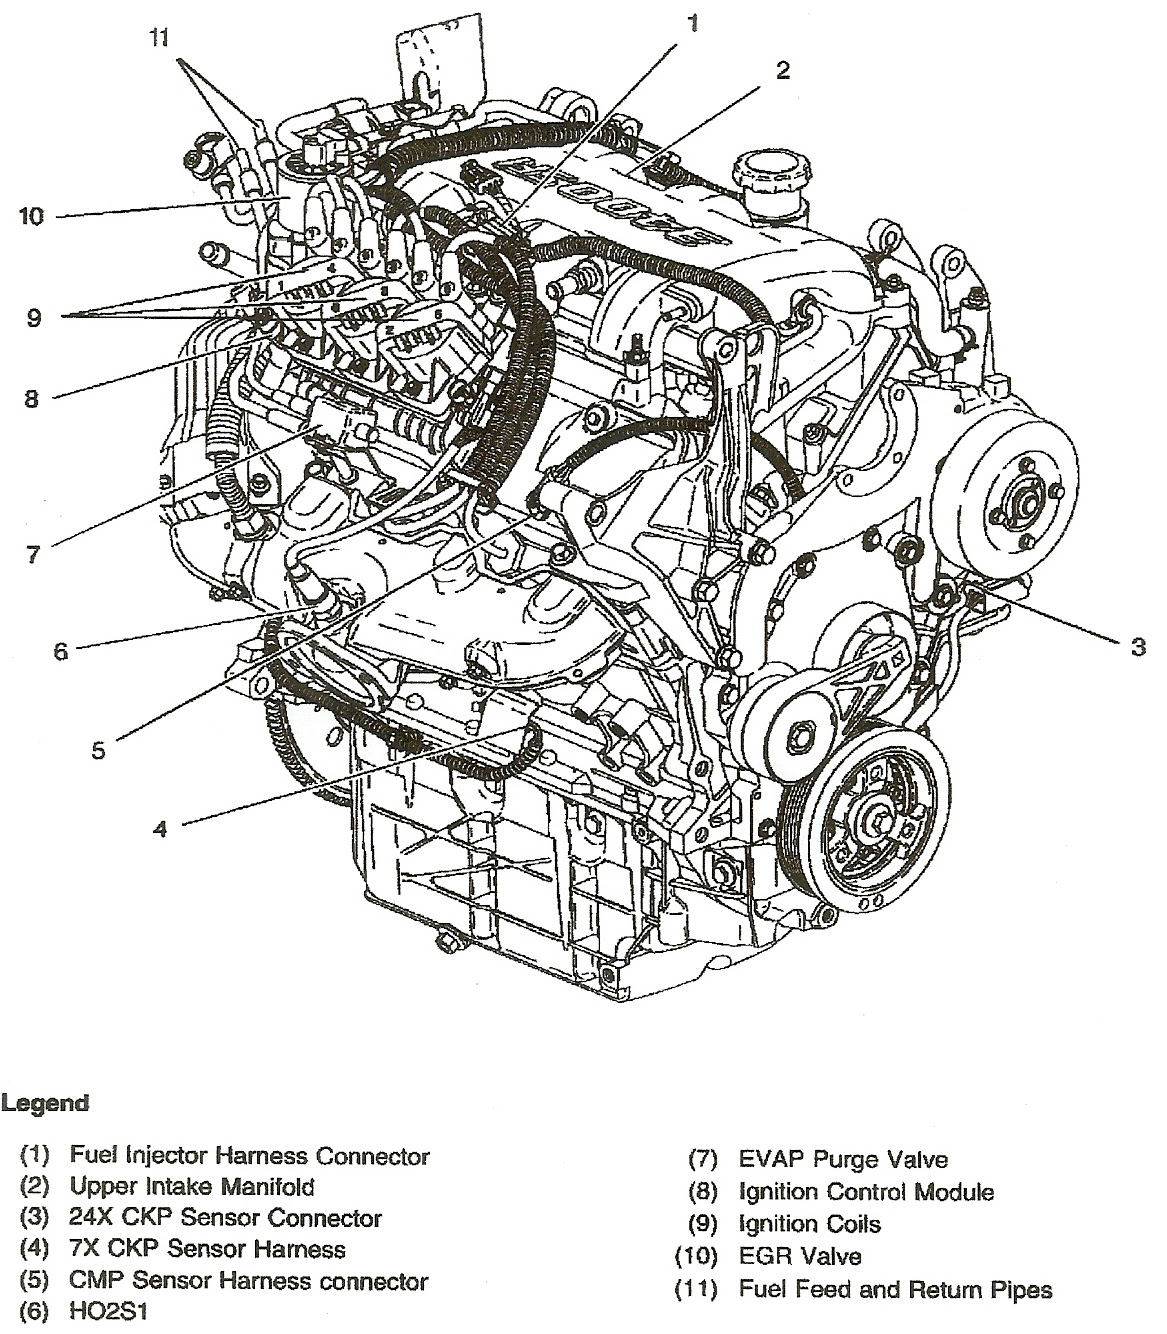 WIRING DIAGRAM FOR A 2000 PONTIAC GRAND AM